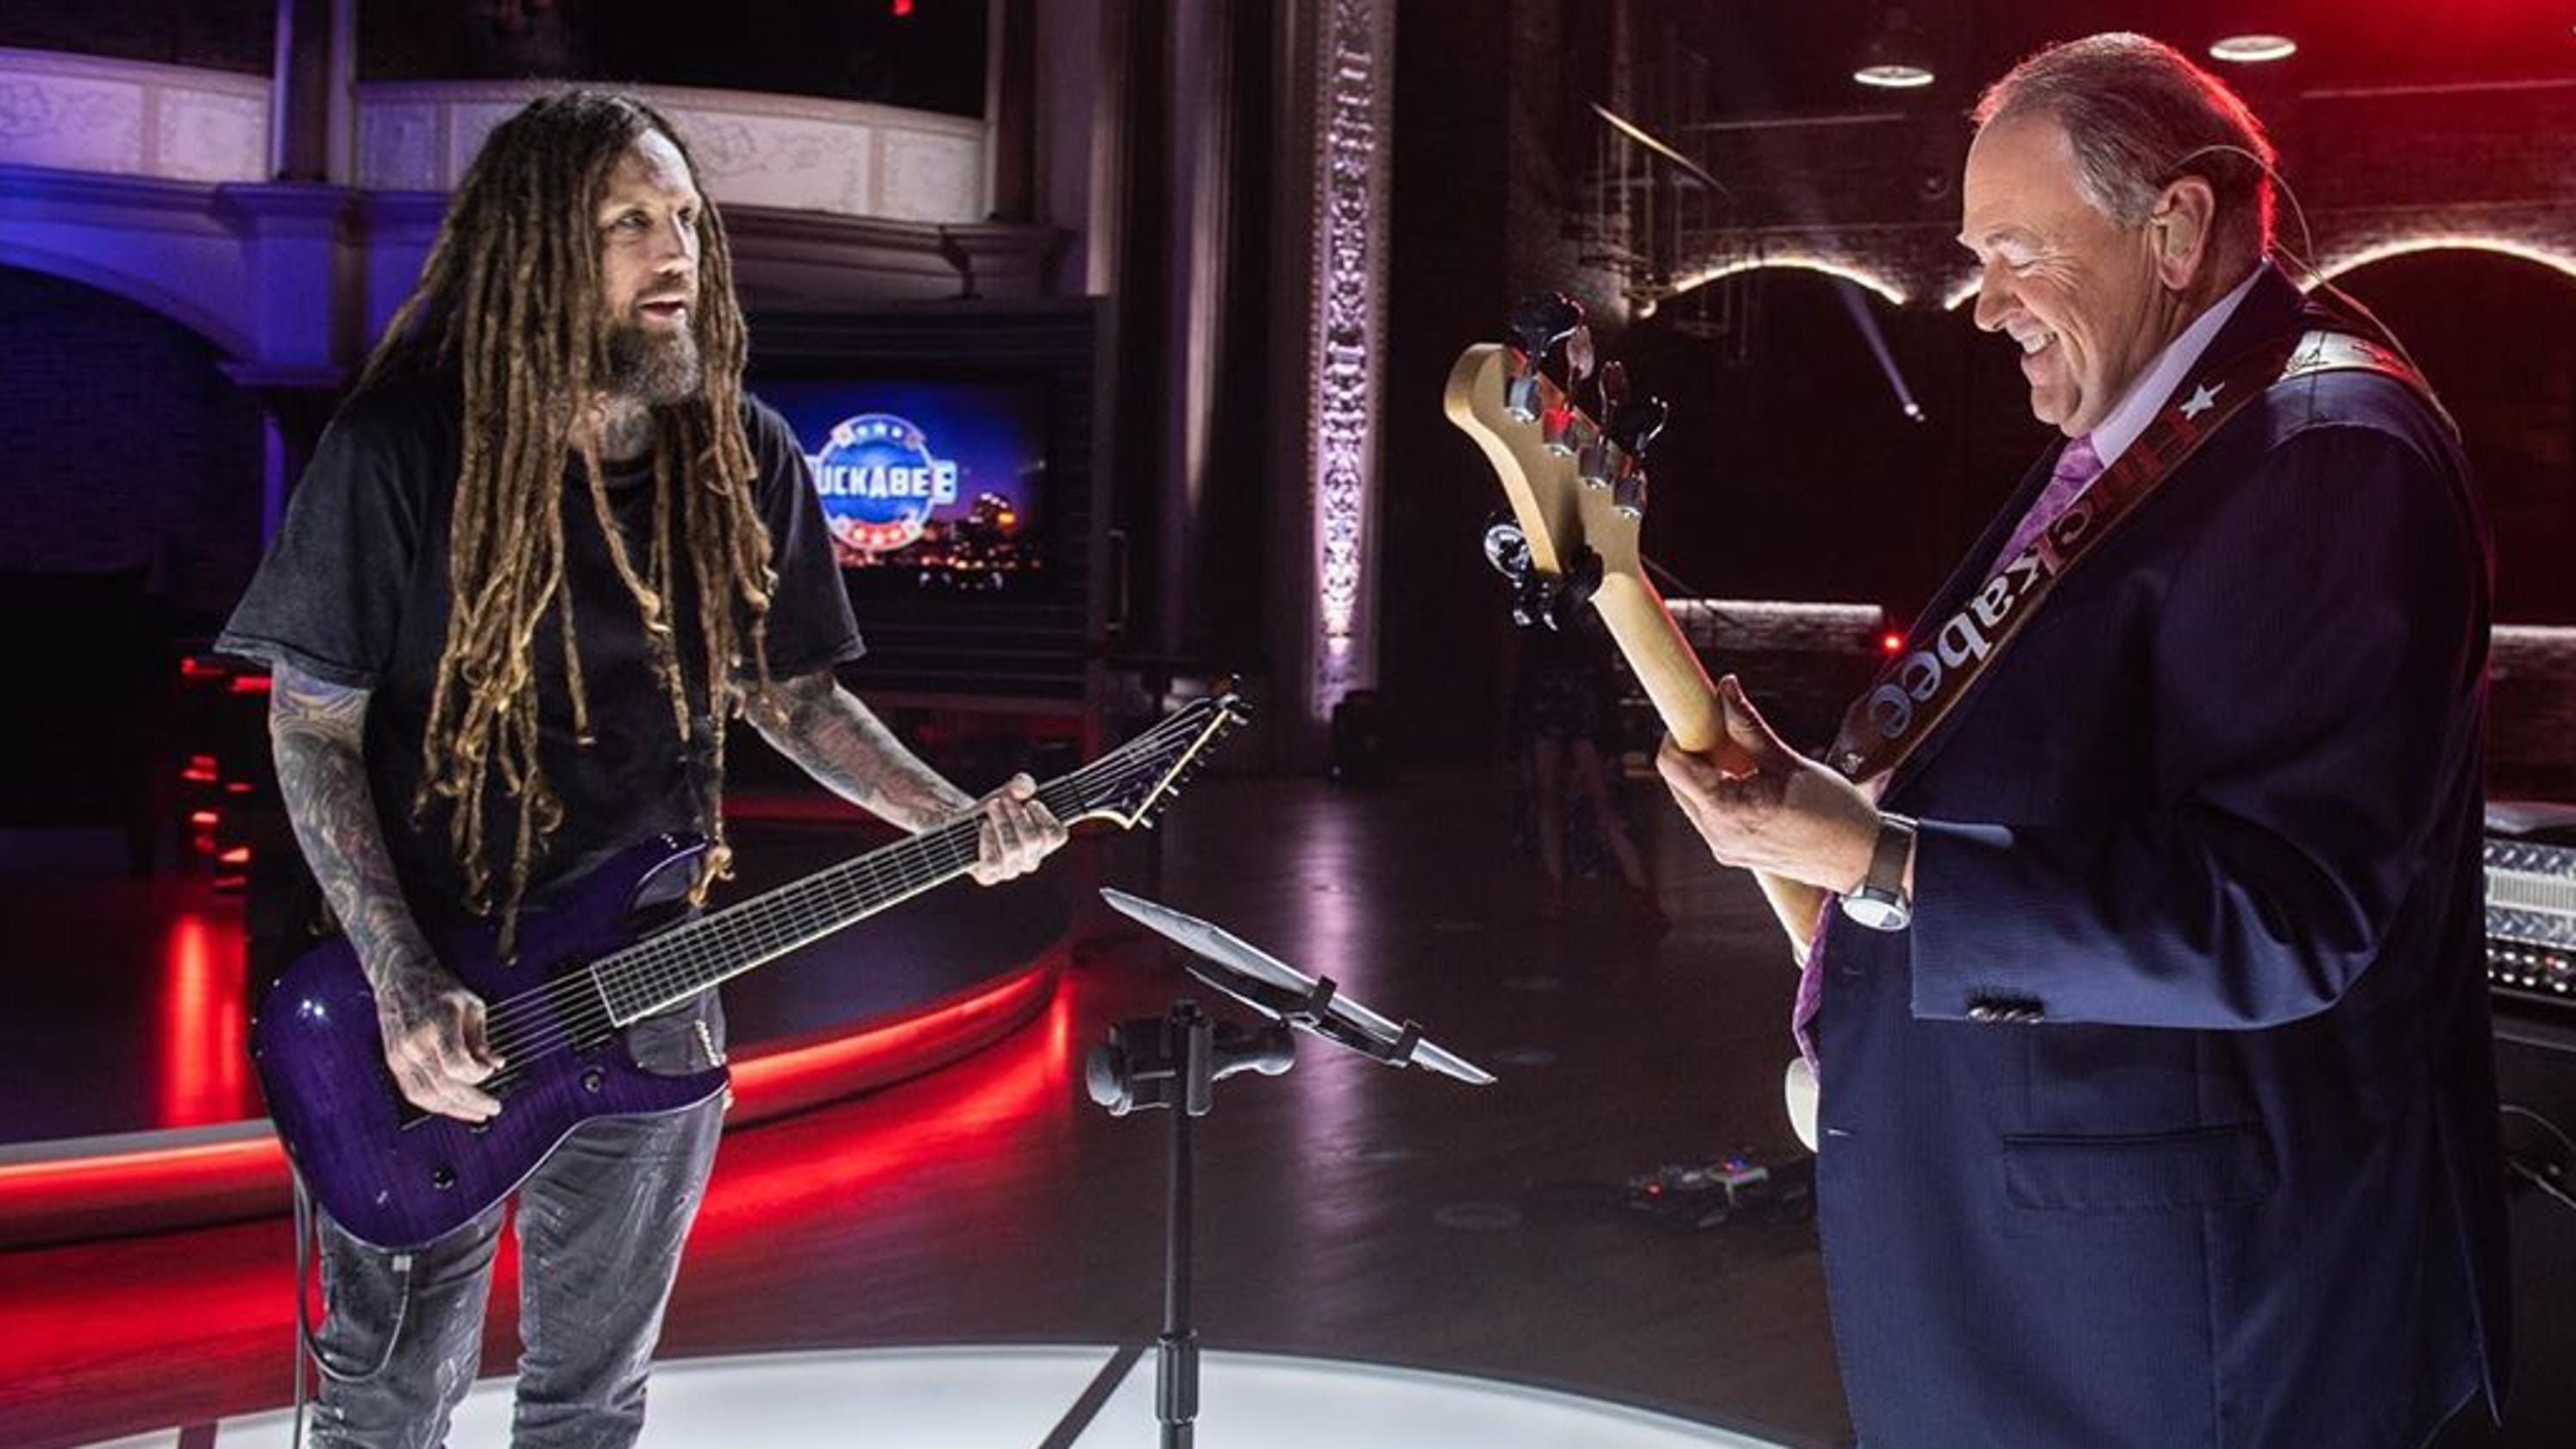 Mike Huckabee 'shreds' With Korn Guitarist On Nashville TV